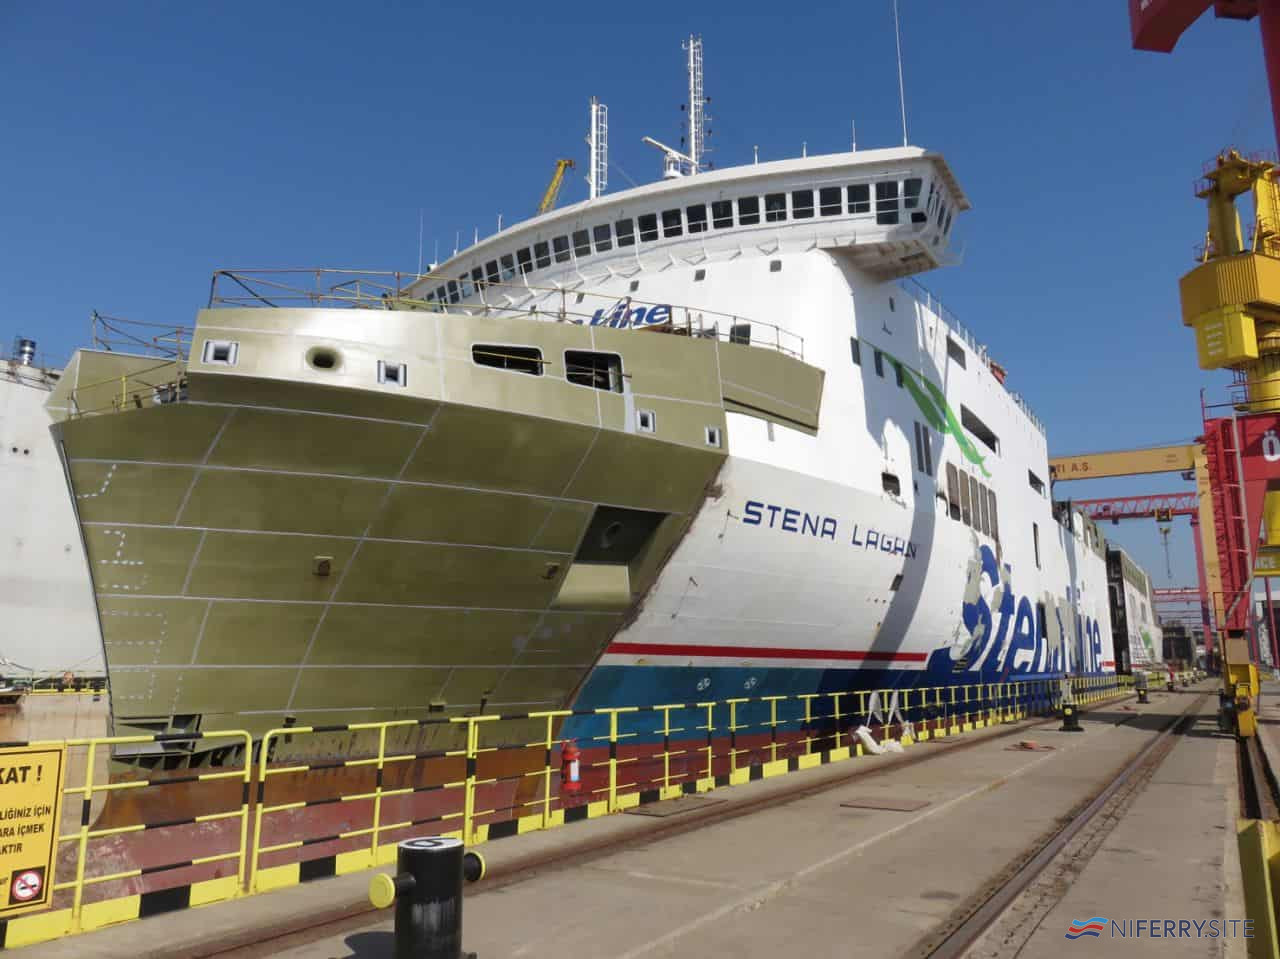 STENA LAGAN undergoing rebuilding at SEDEF Shipbuilding, Tuzla, Turkey. The rebuilt bow, through which the ship will now be able to load vehicles, can be clearly seen. Copyright © Stena RoRo.